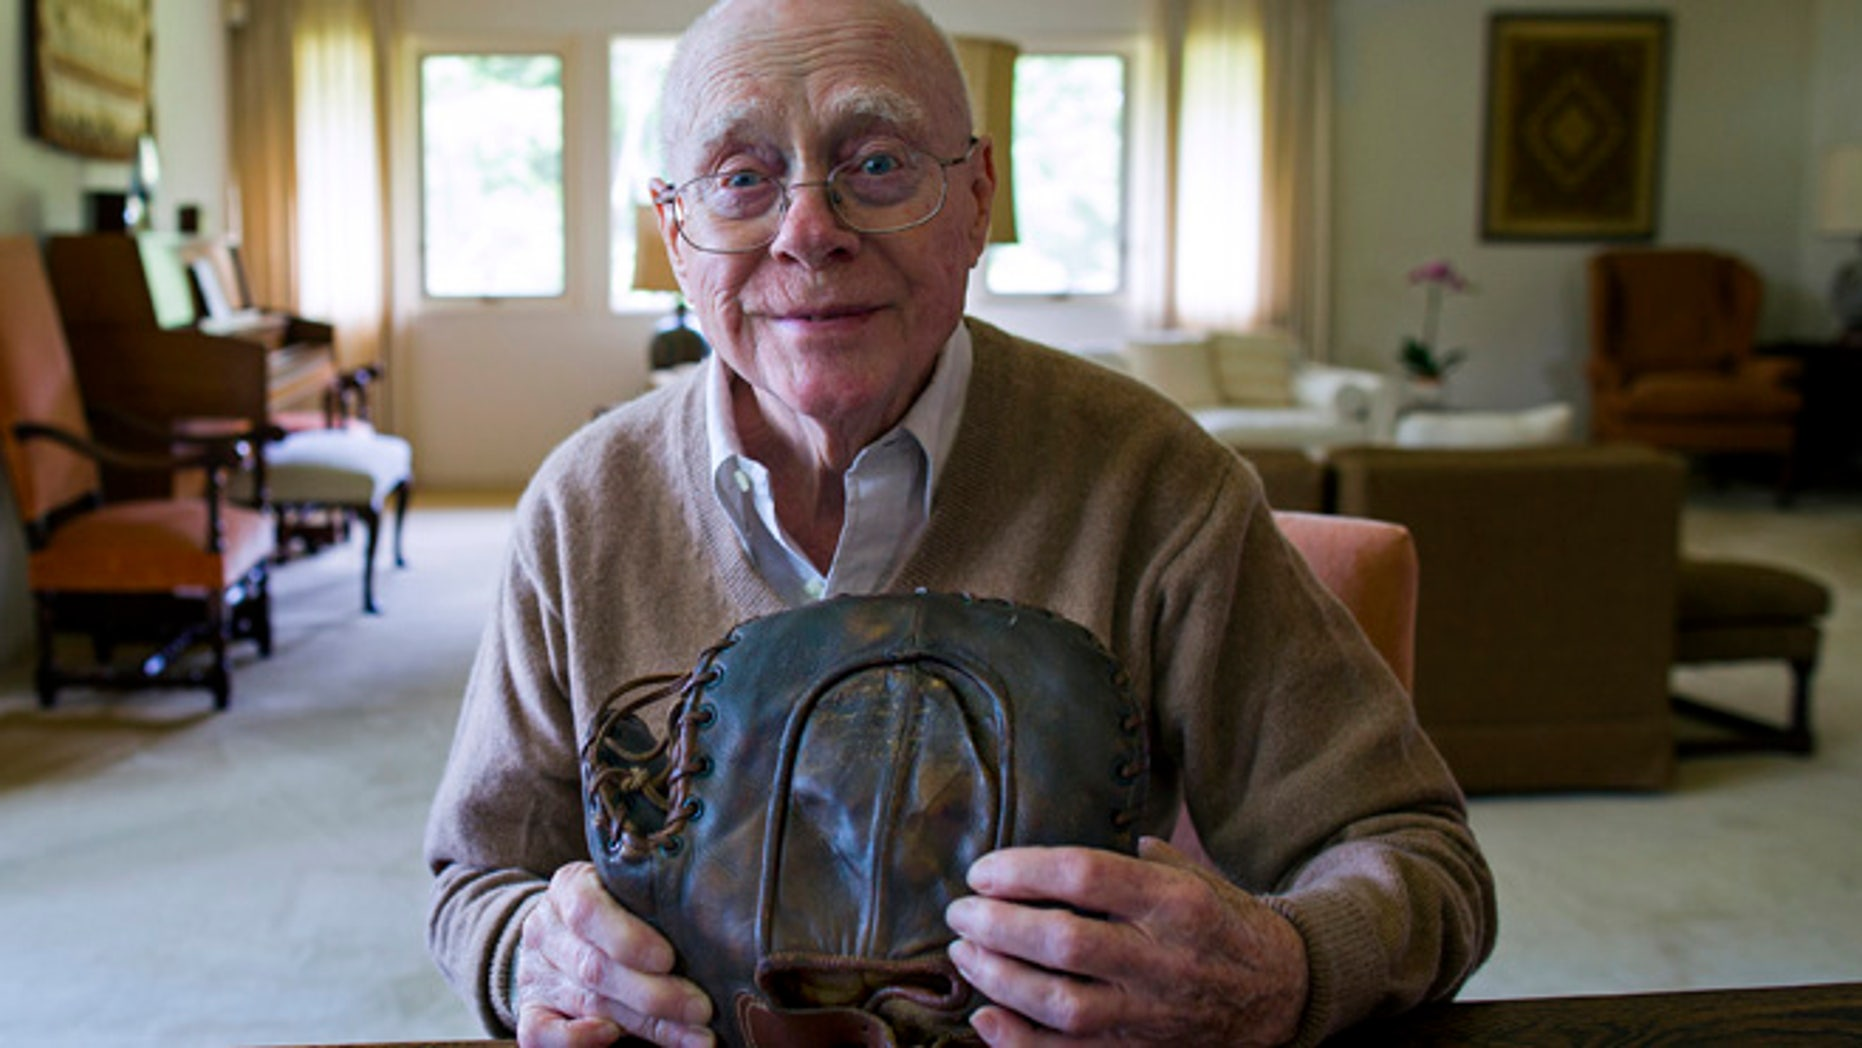 June 30, 2014: Howard Henderson, who as a boy in New York played catch with baseball legend Lou Gehrig, holds a signed baseman's mitt given to him by Gehrig when he was young, at Henderson's Greenwich, Conn., home.